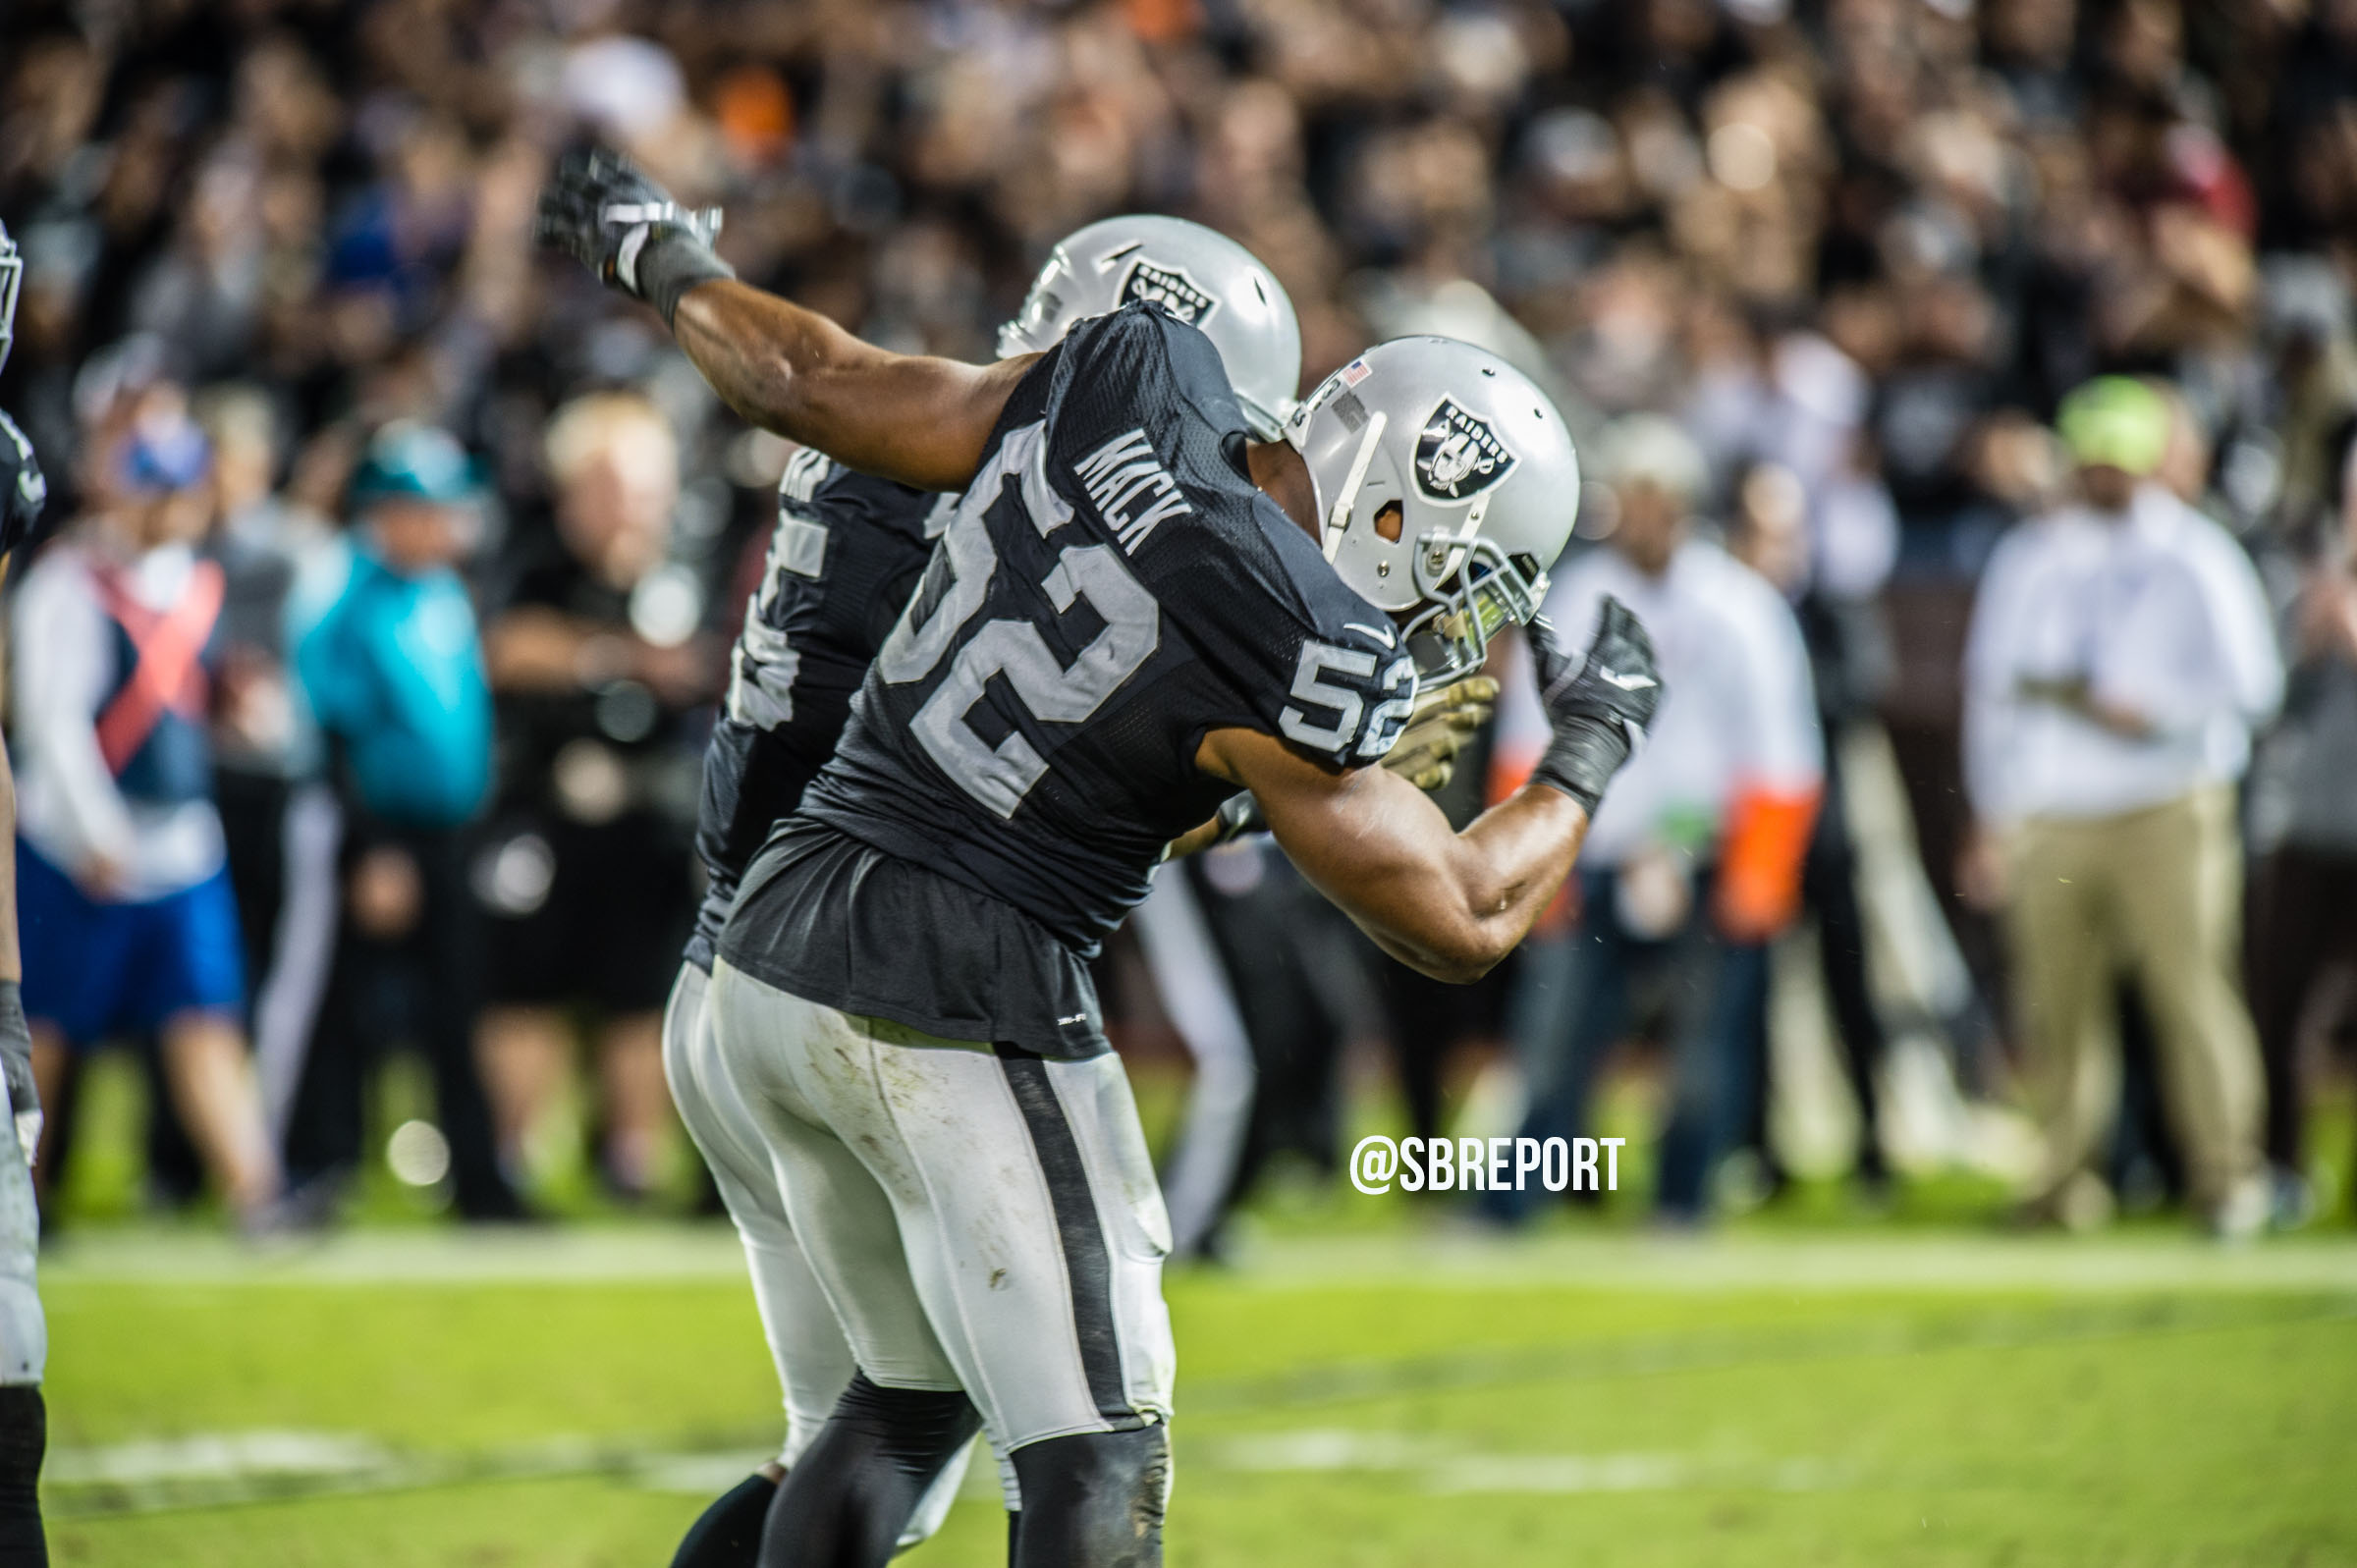 Reports: Raiders expected to trade star DE Khalil Mack to Bears